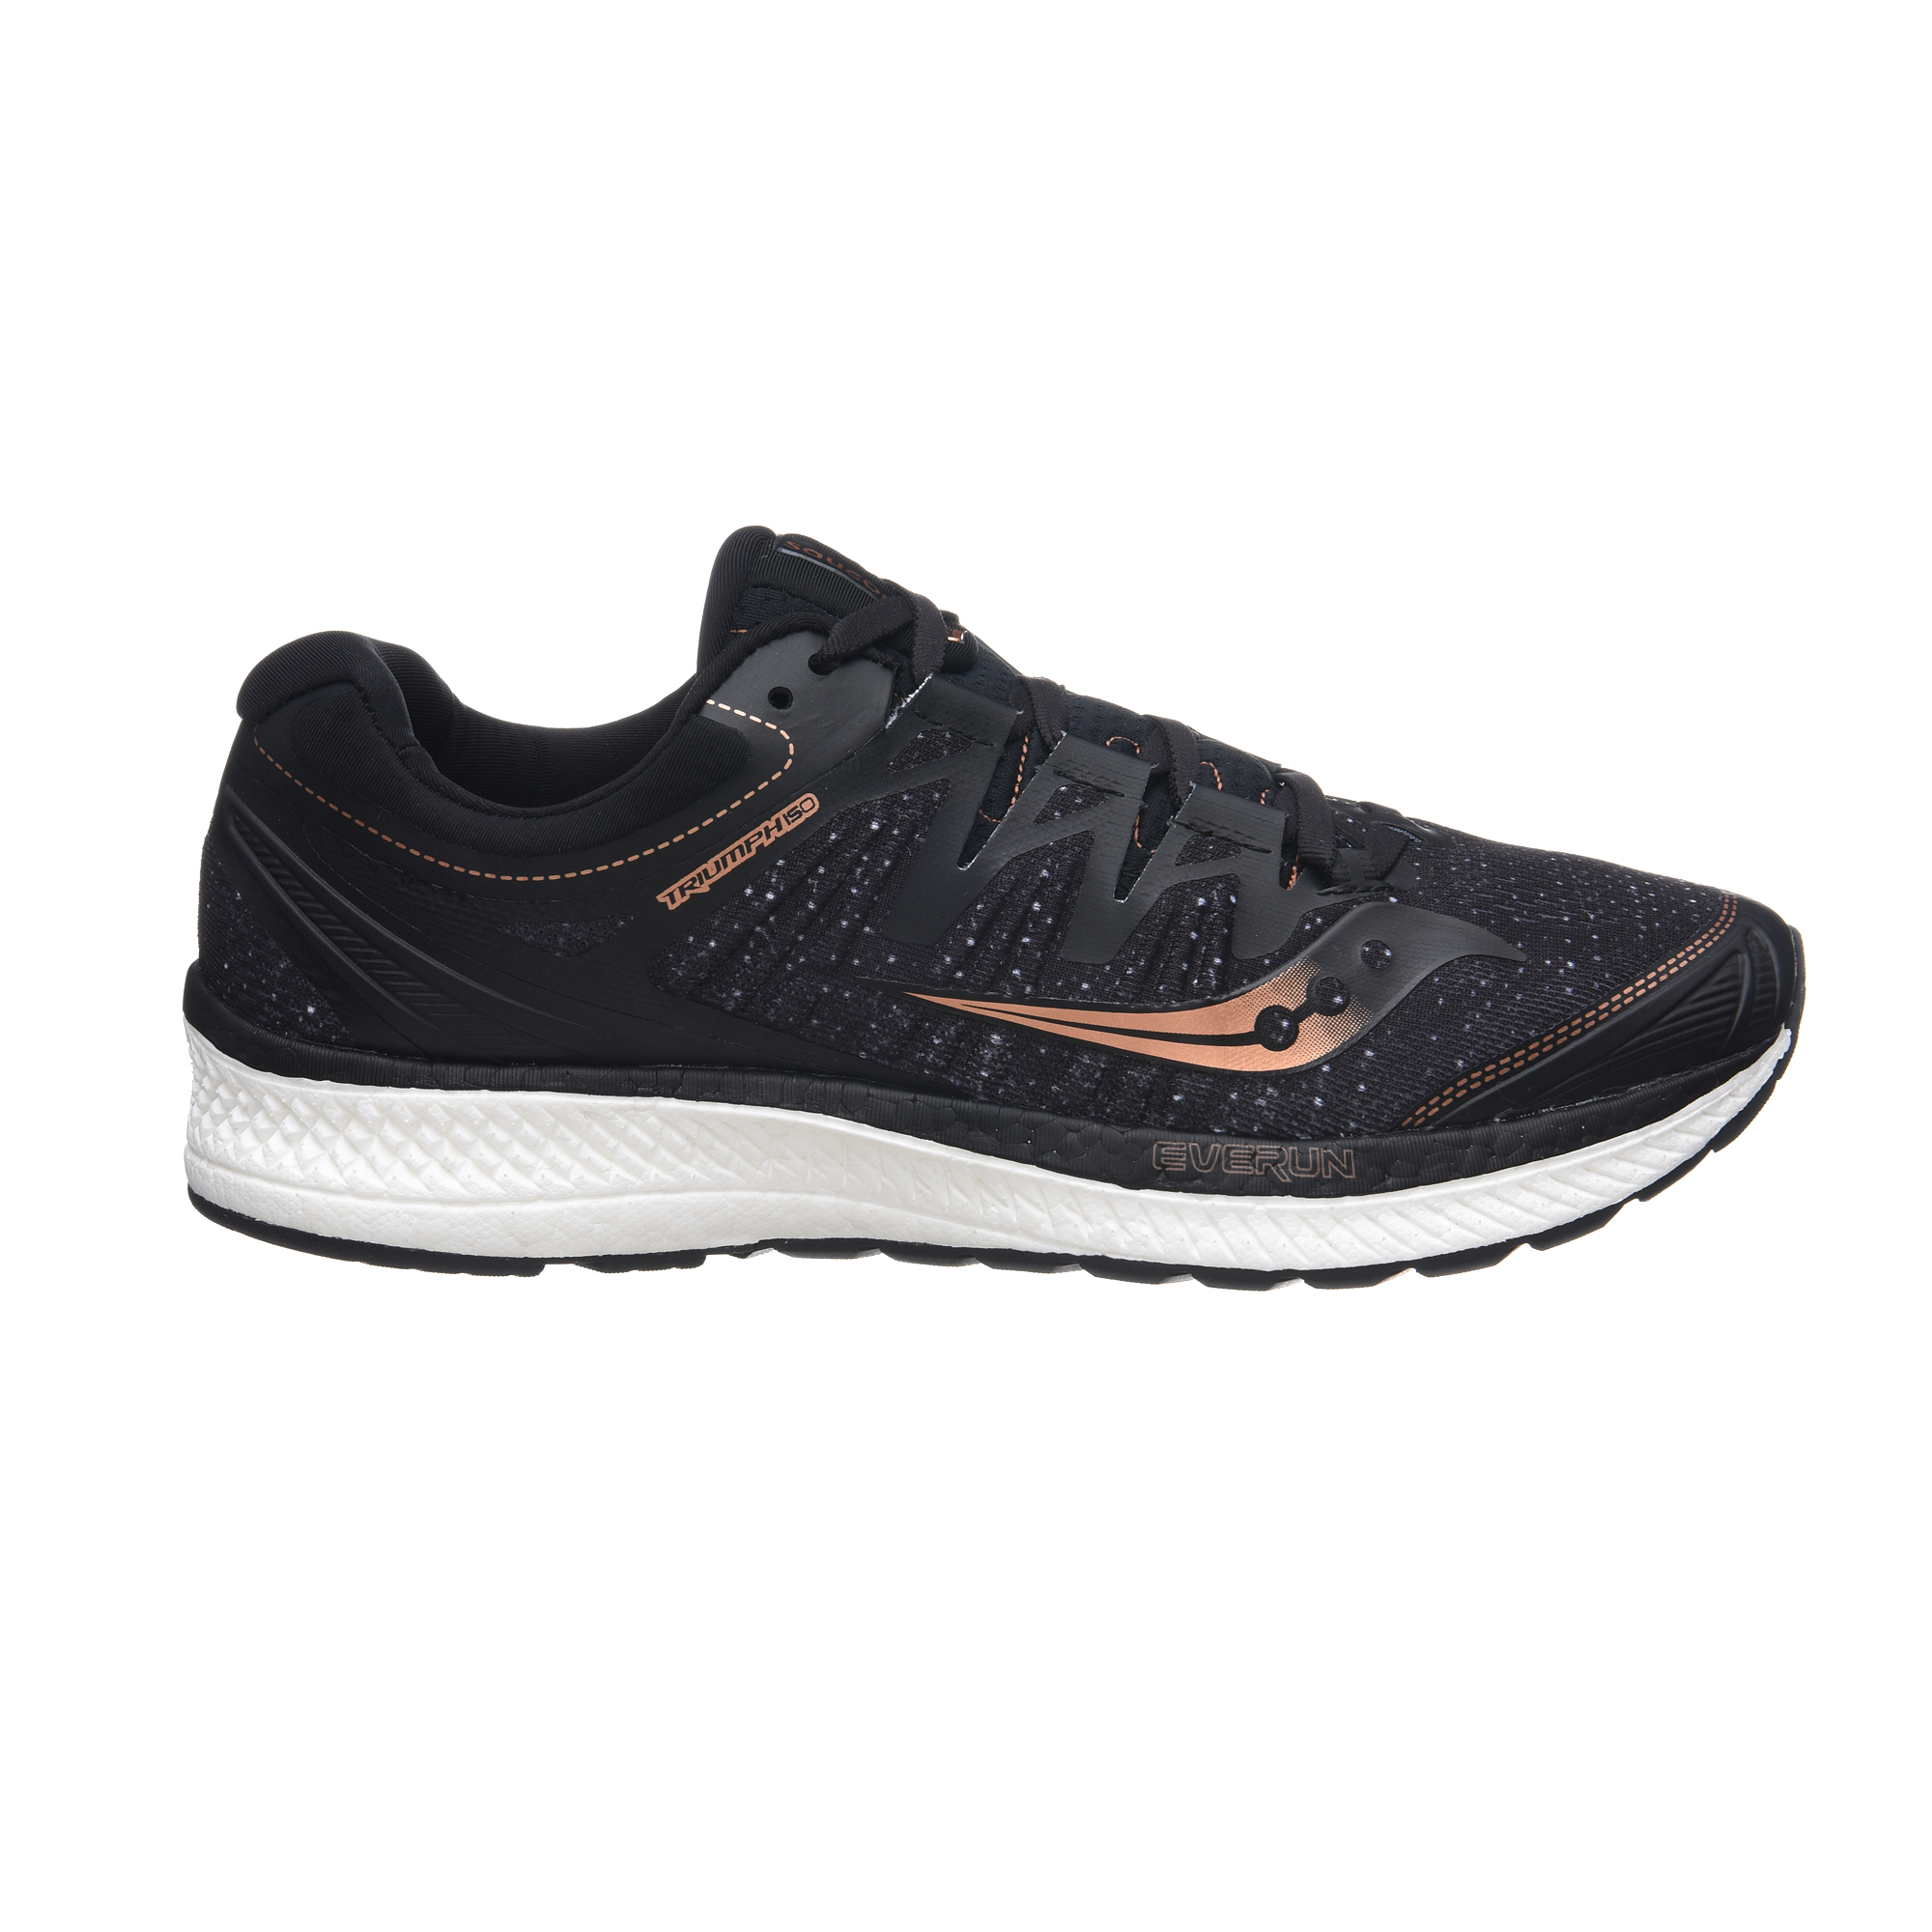 Saucony Women's Triumph ISO 4 Shoes | Shoes and overlays